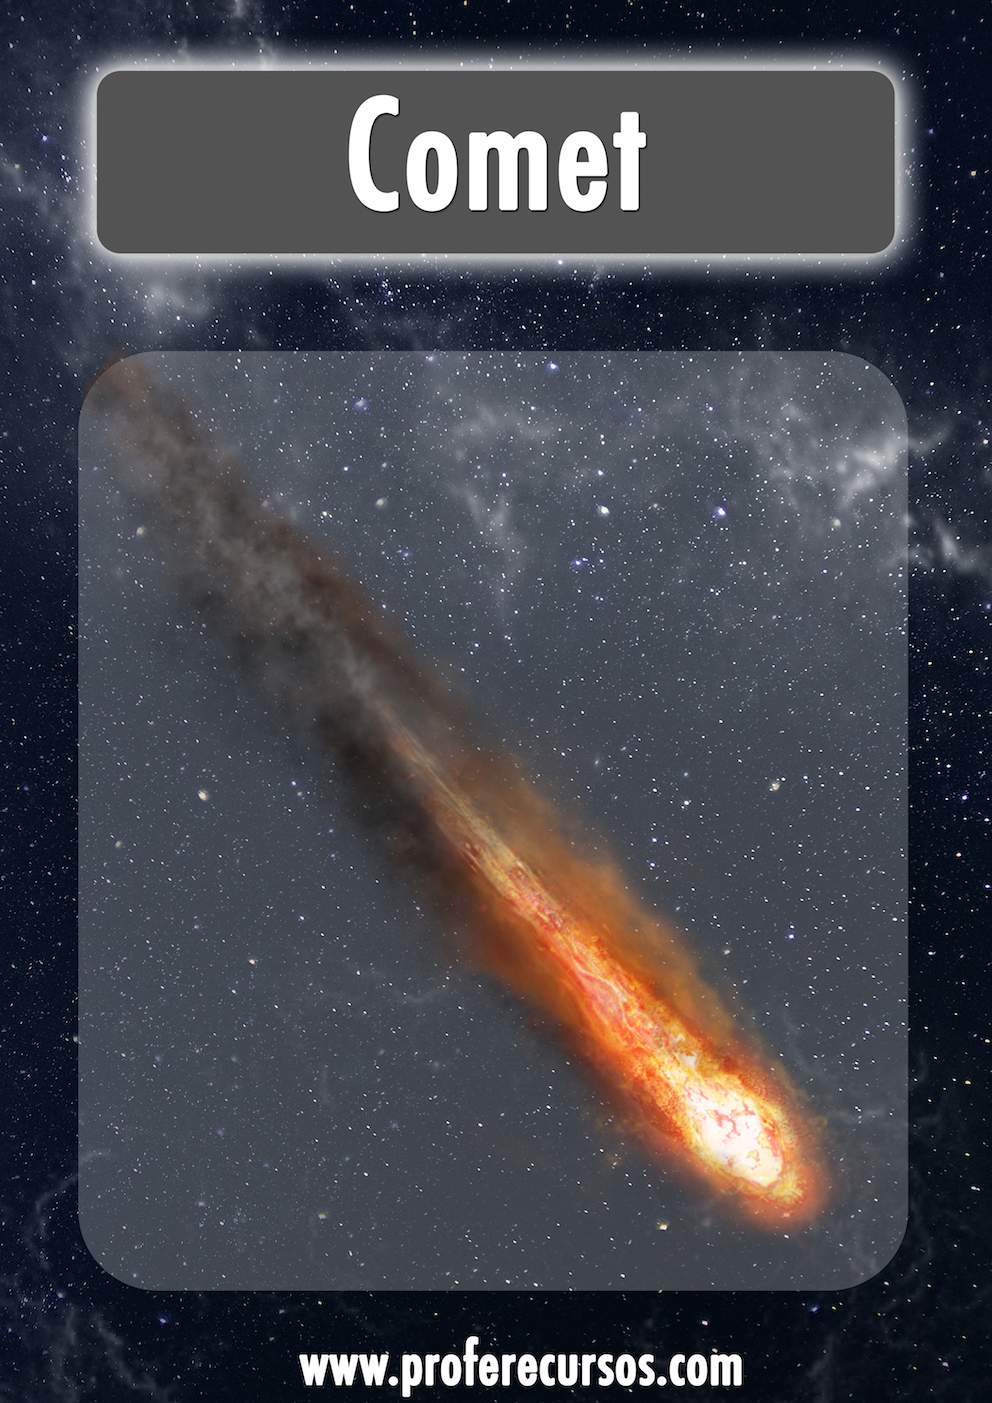 Comet Space Vocabulary Flashcards